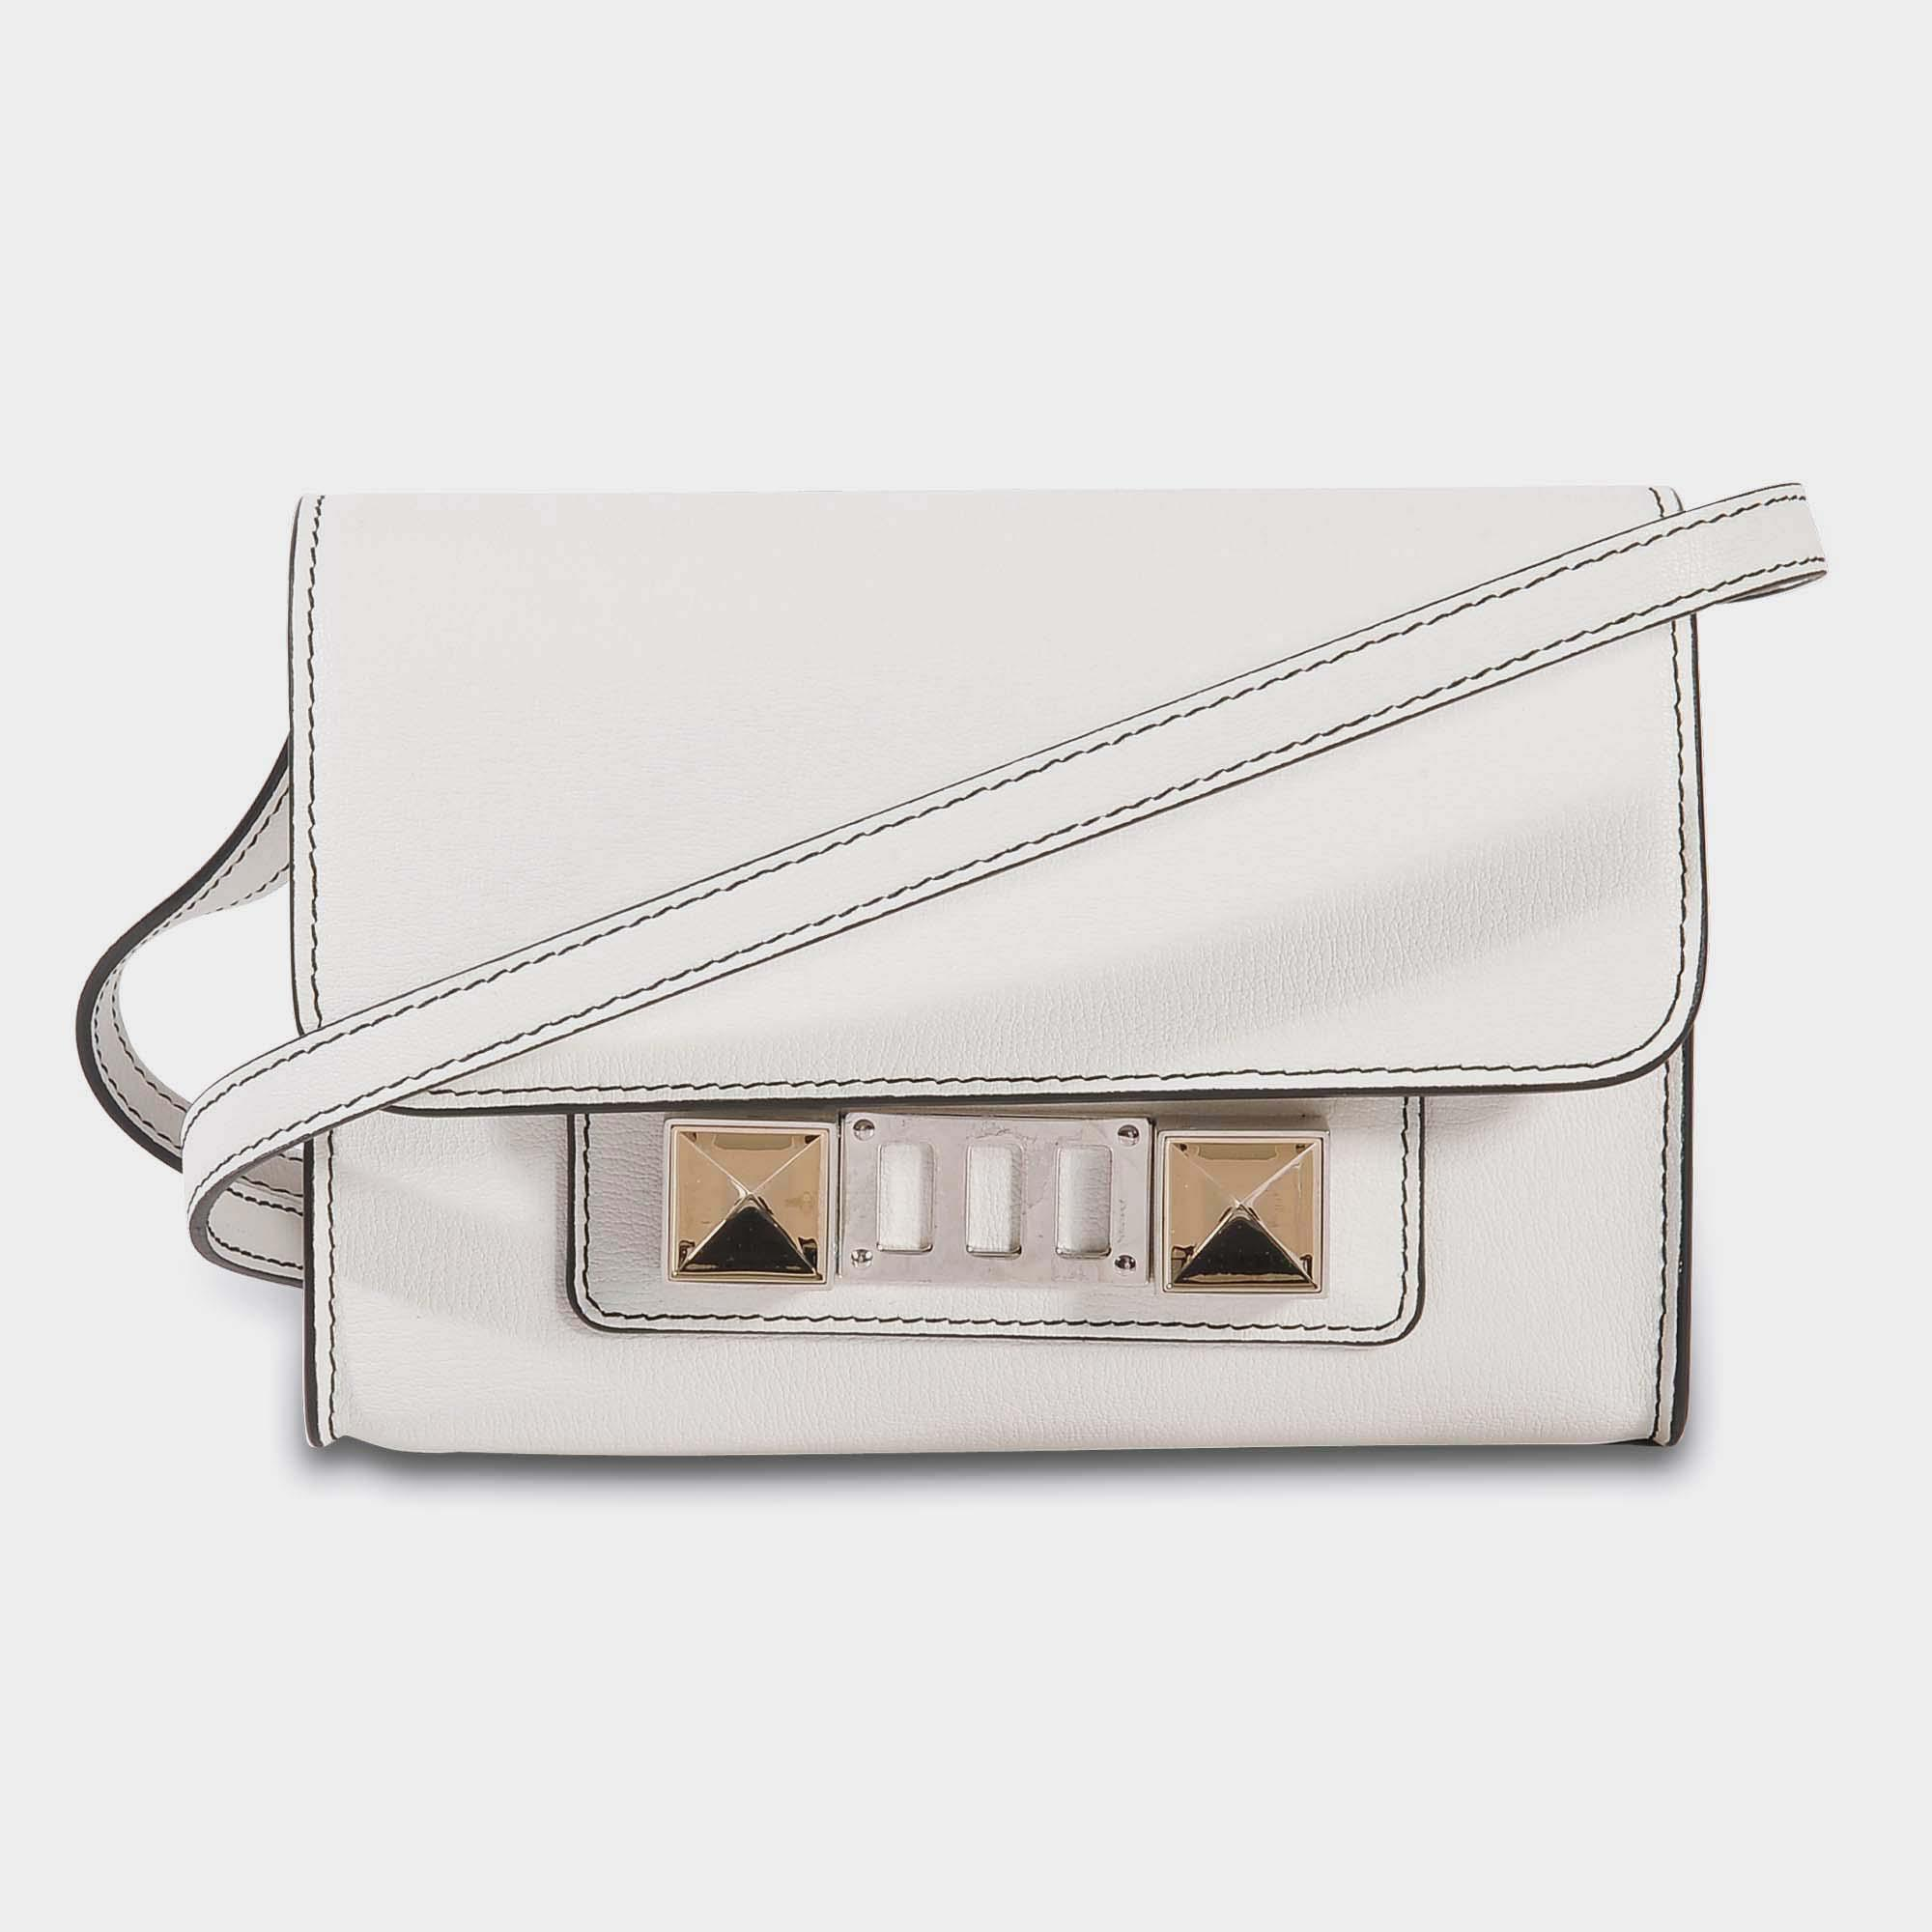 VIDA Leather Statement Clutch - Feather Wing Golden Grey by VIDA IS6vLv